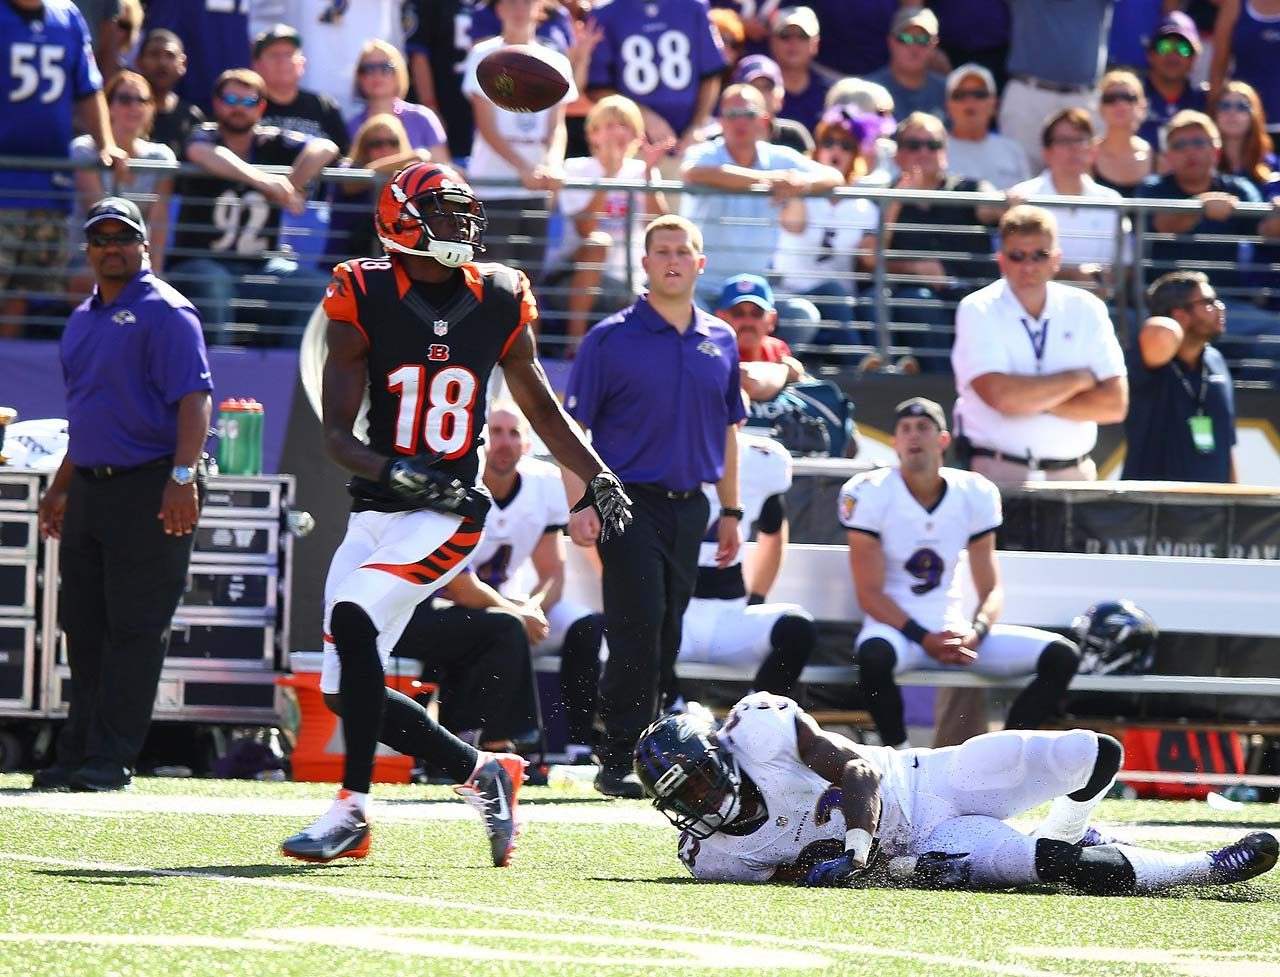 Wide receiver A.J. Green of the  Bengals keeps his eye on the ball, before scoring a touchdown on this play.